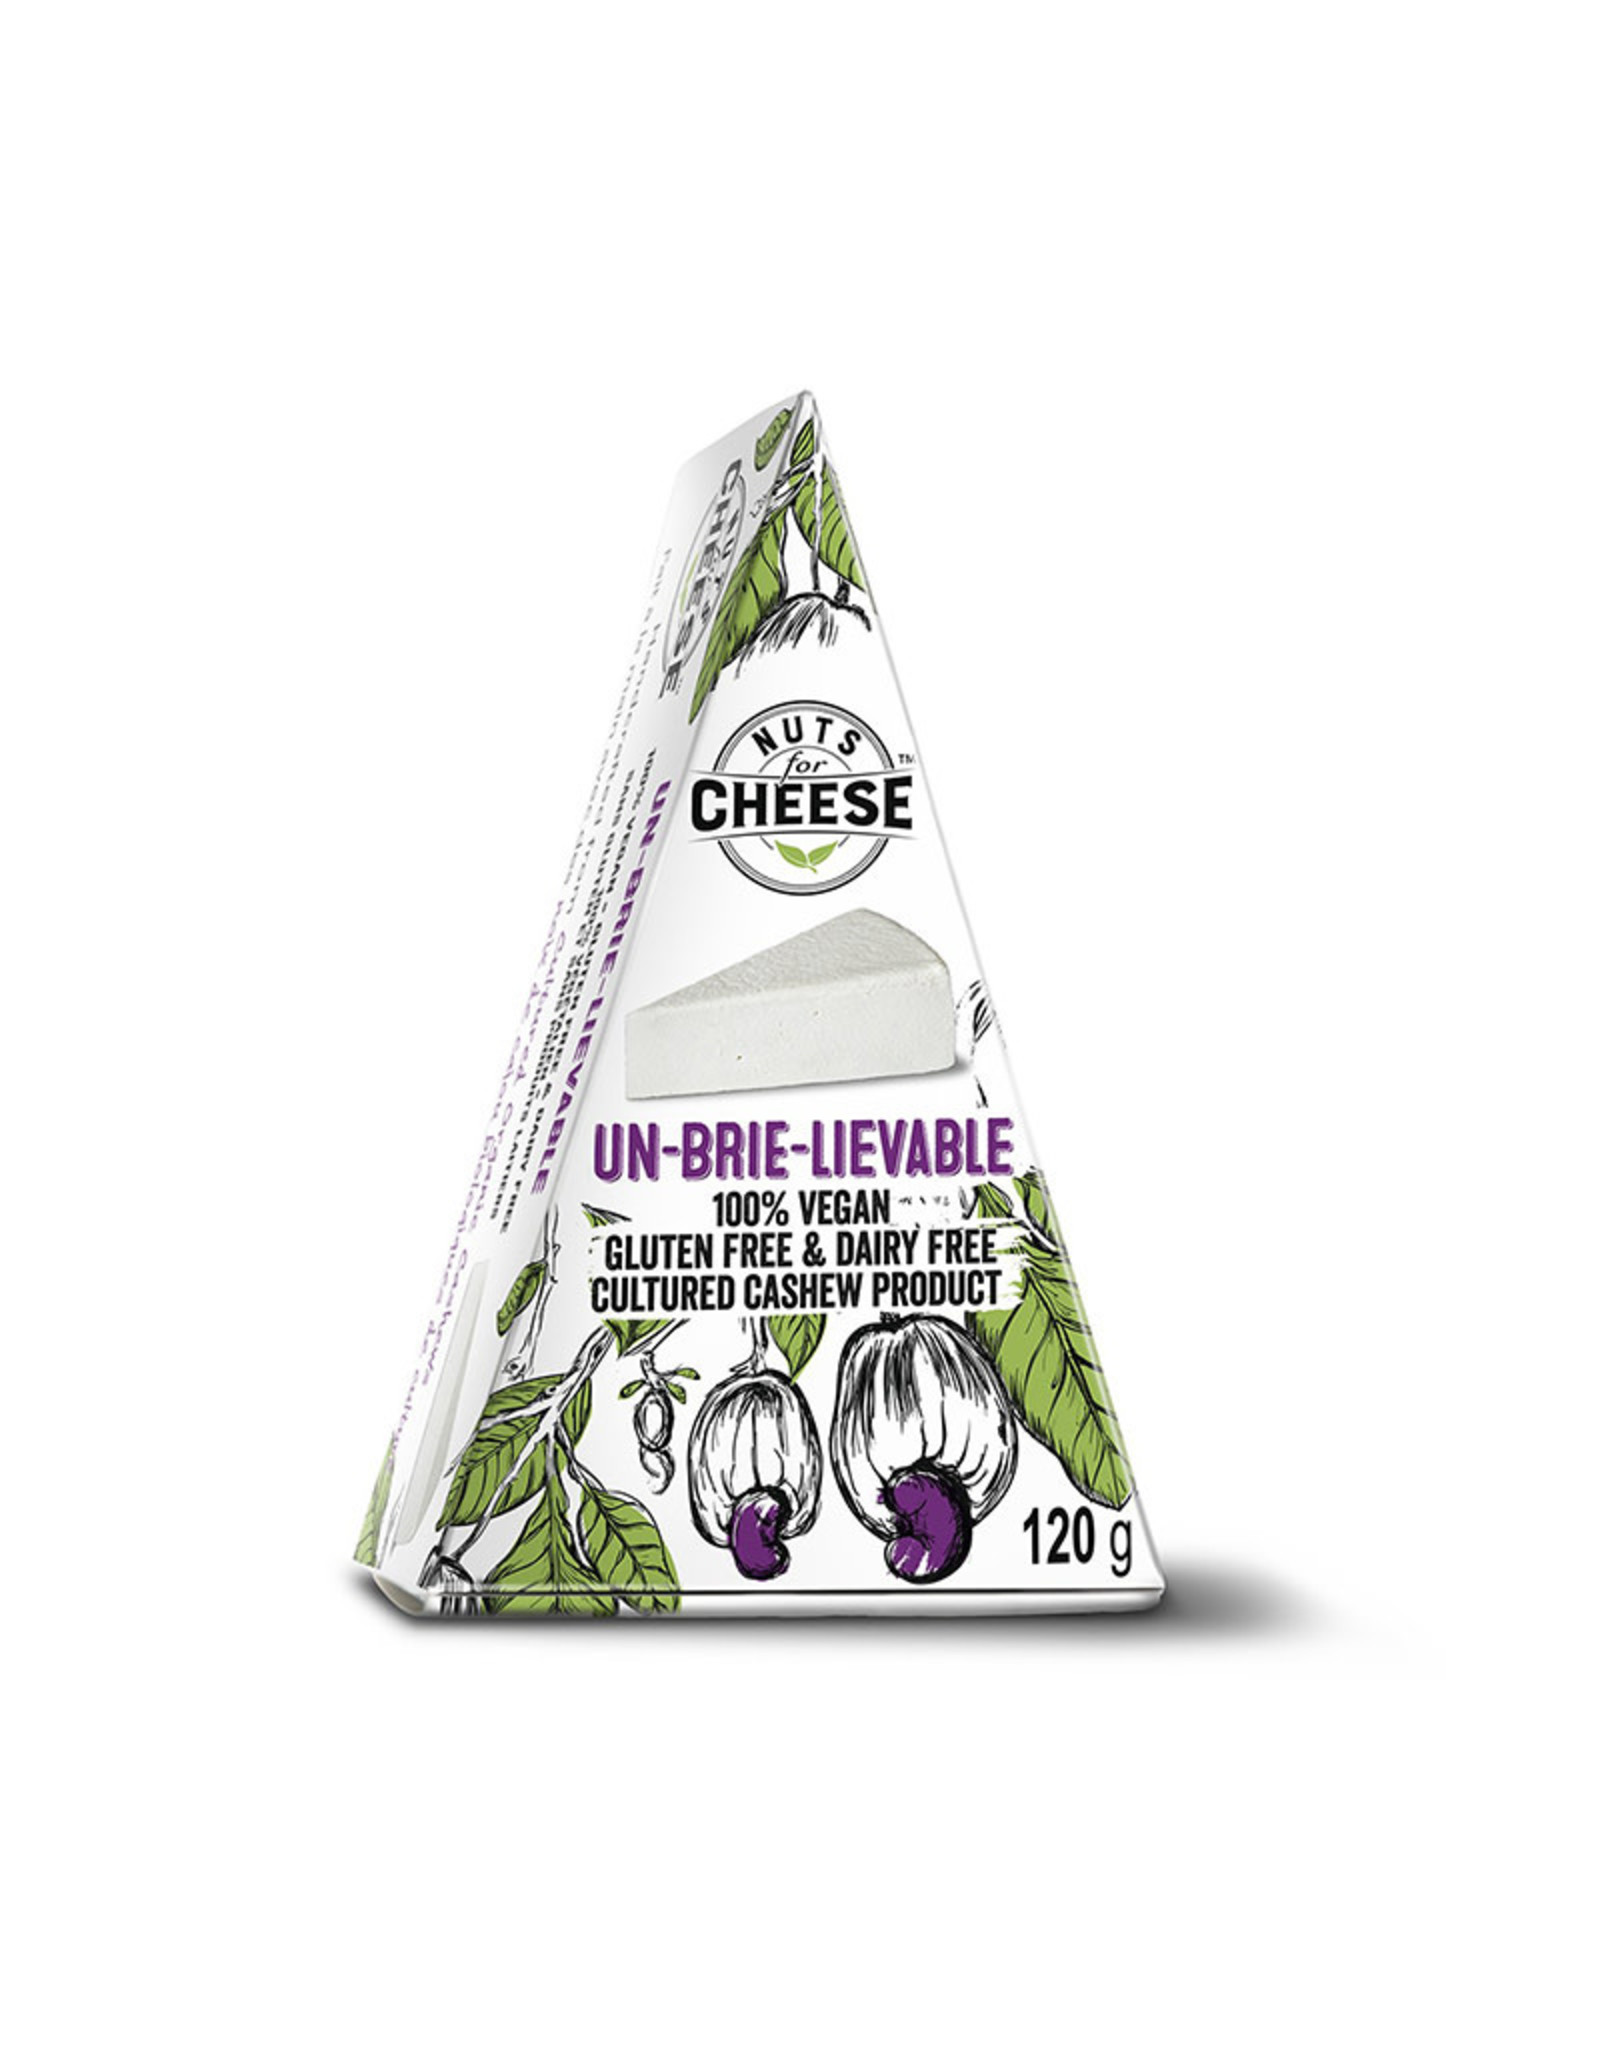 Nuts for Cheese Nuts For Cheese - Un-Brie-lievable (120g)